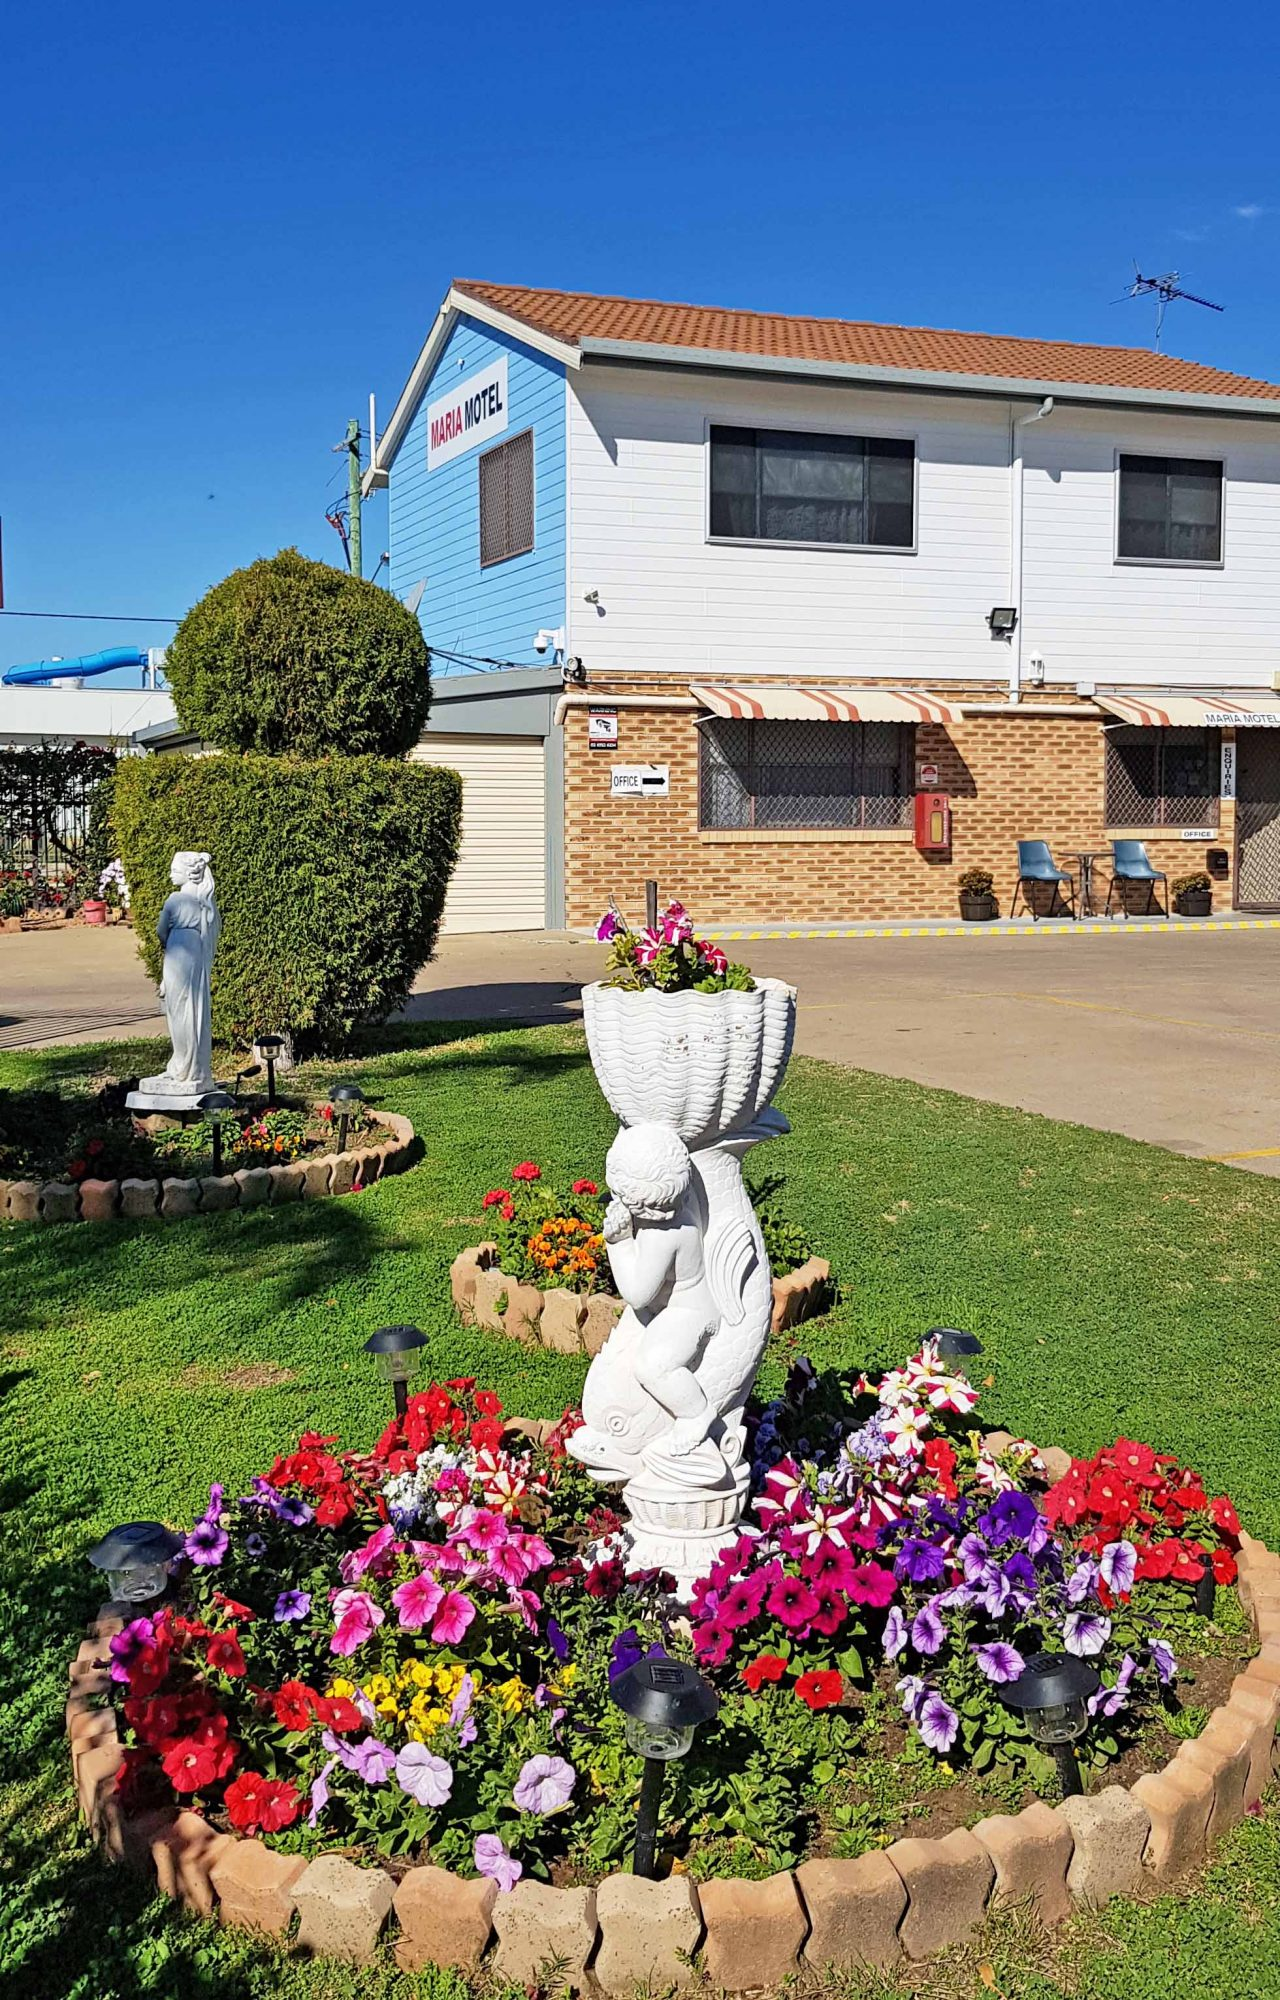 maria motel garden with mixture of colorful flowers